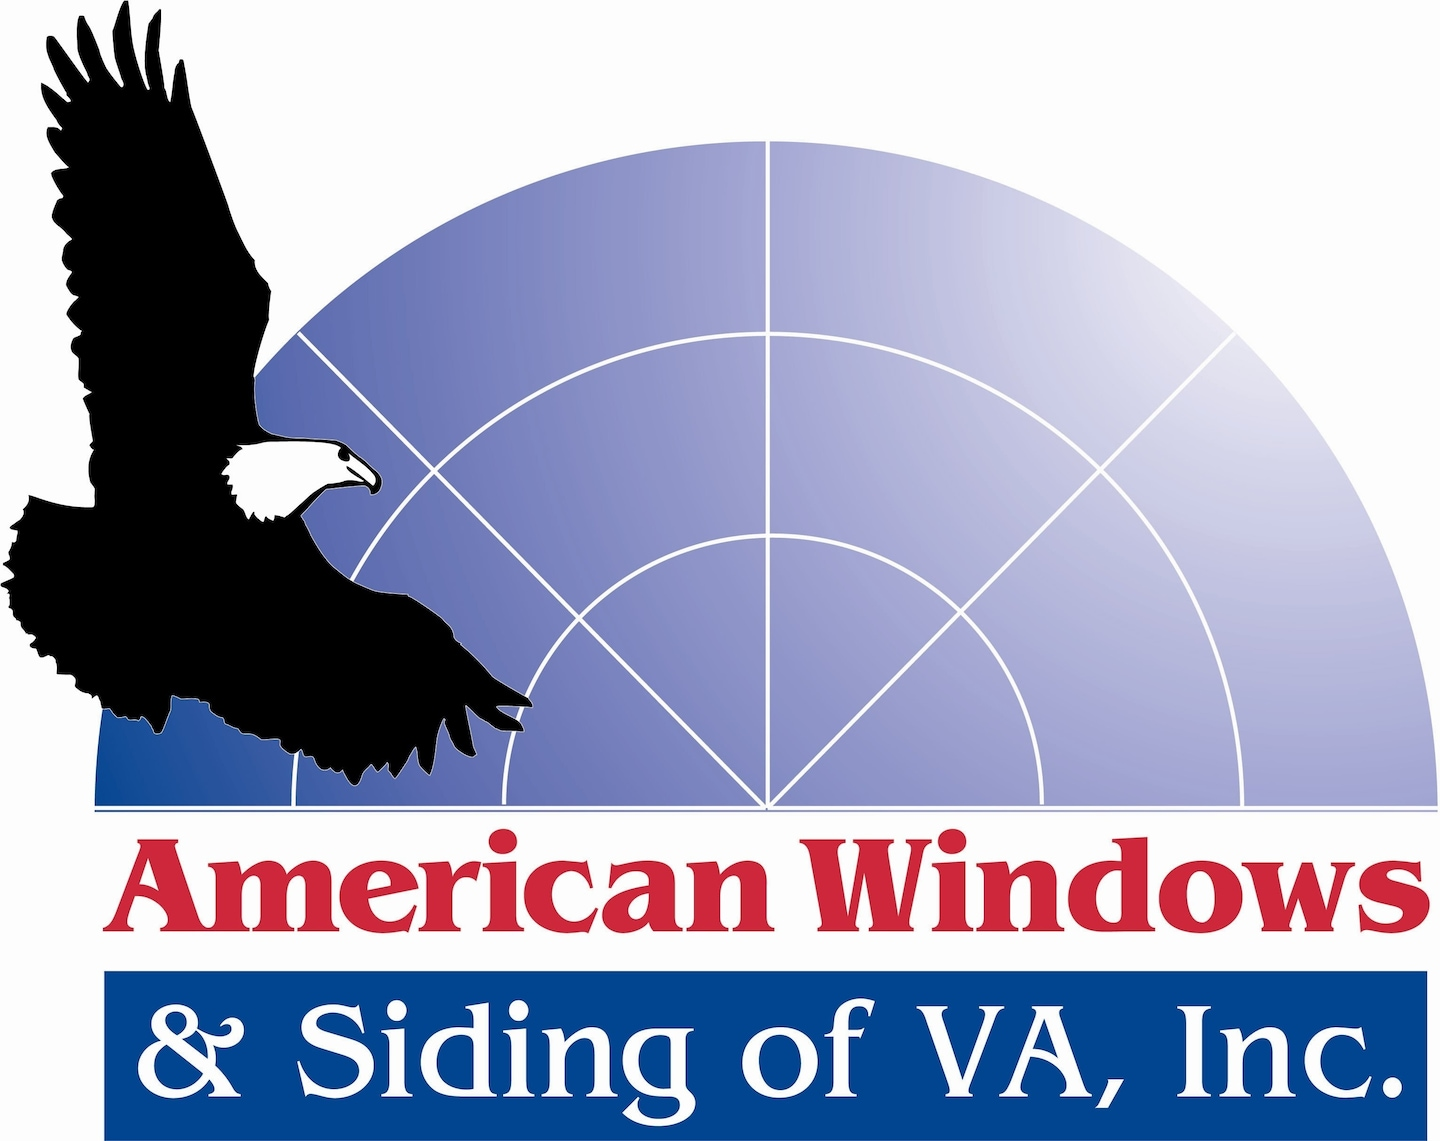 American Windows & Siding